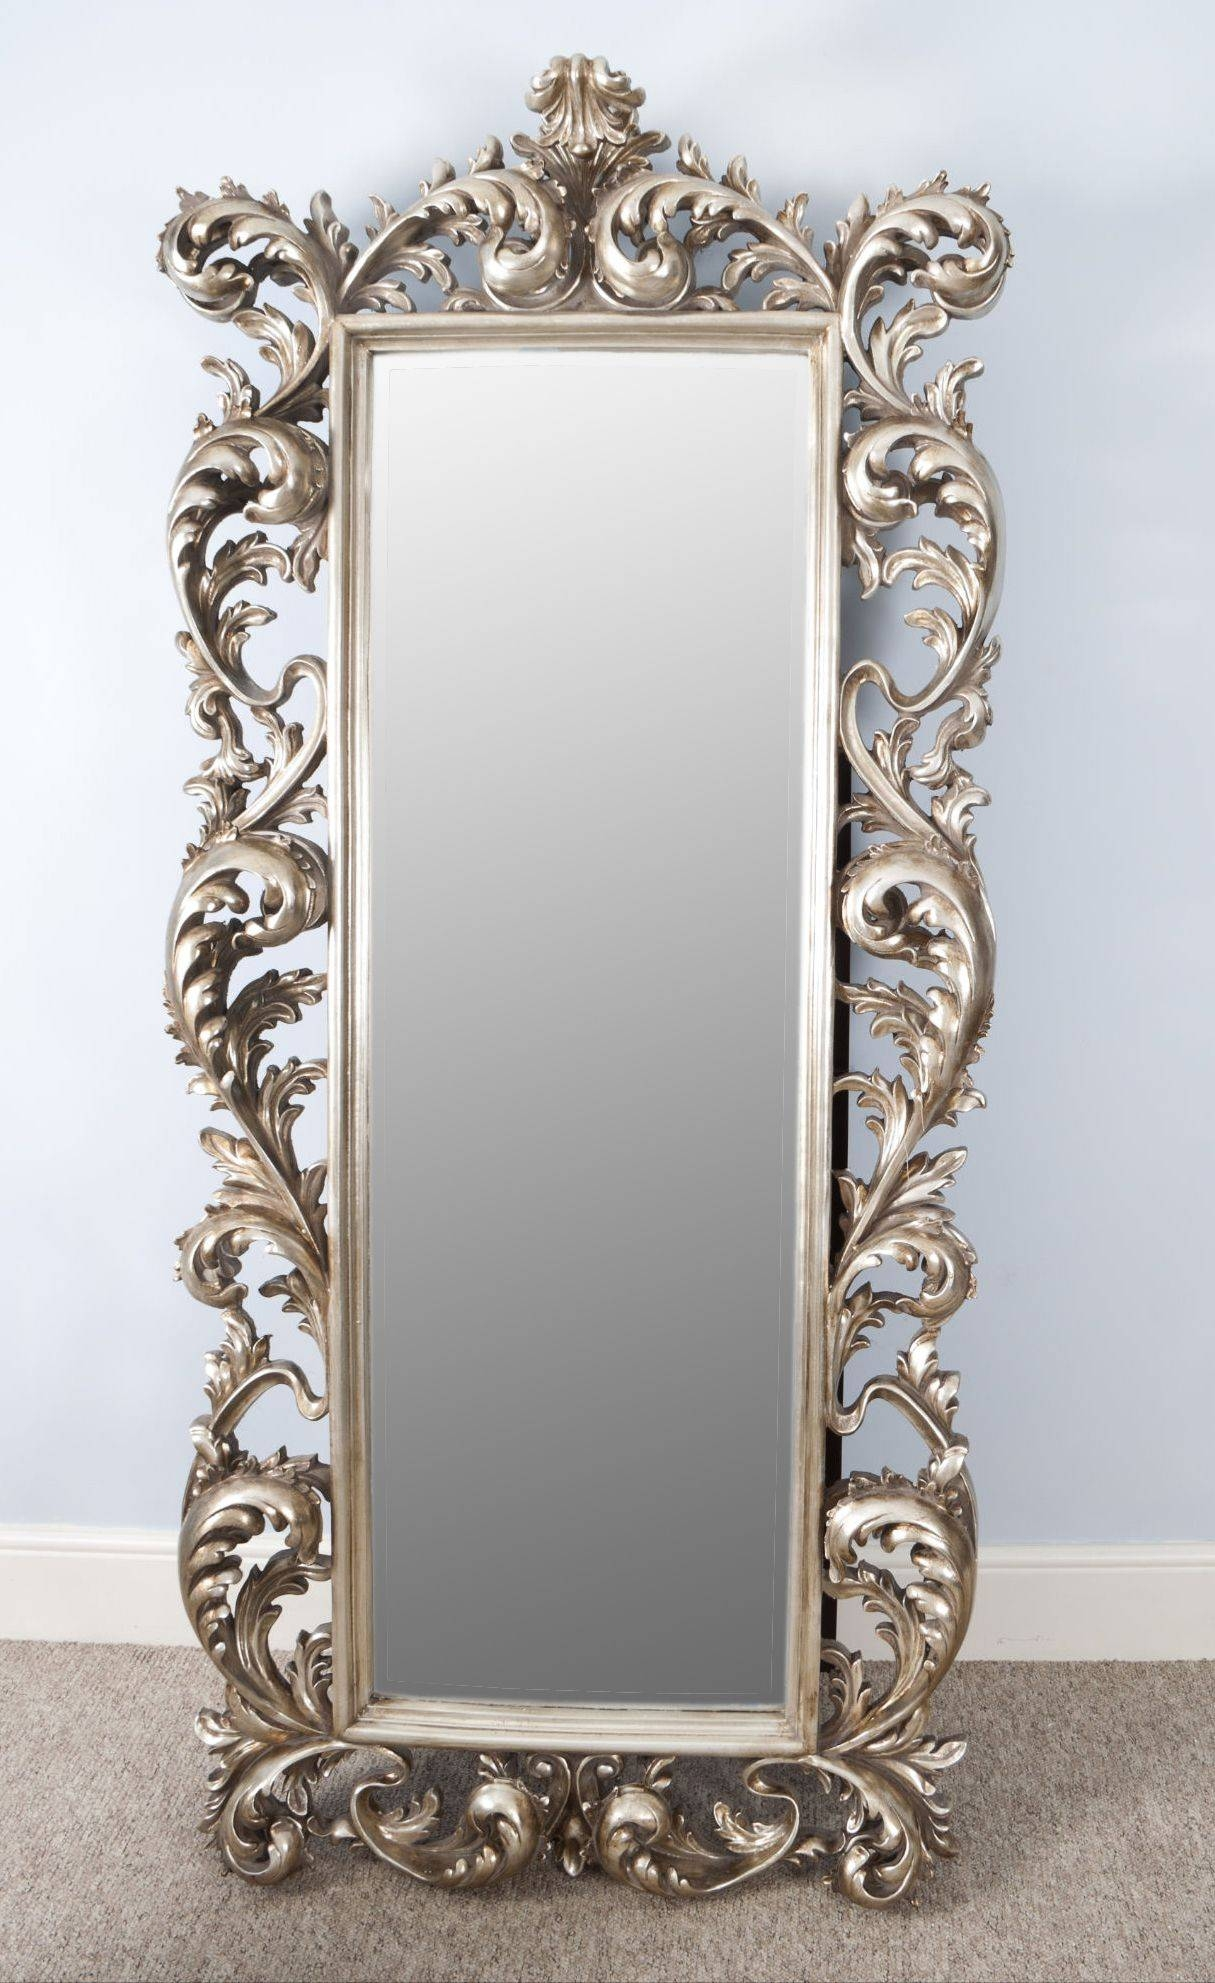 Wondrous Old Oval Mirror Antique Cheval Wall Mirror Likewise Grey with regard to Grey Vintage Mirrors (Image 25 of 25)